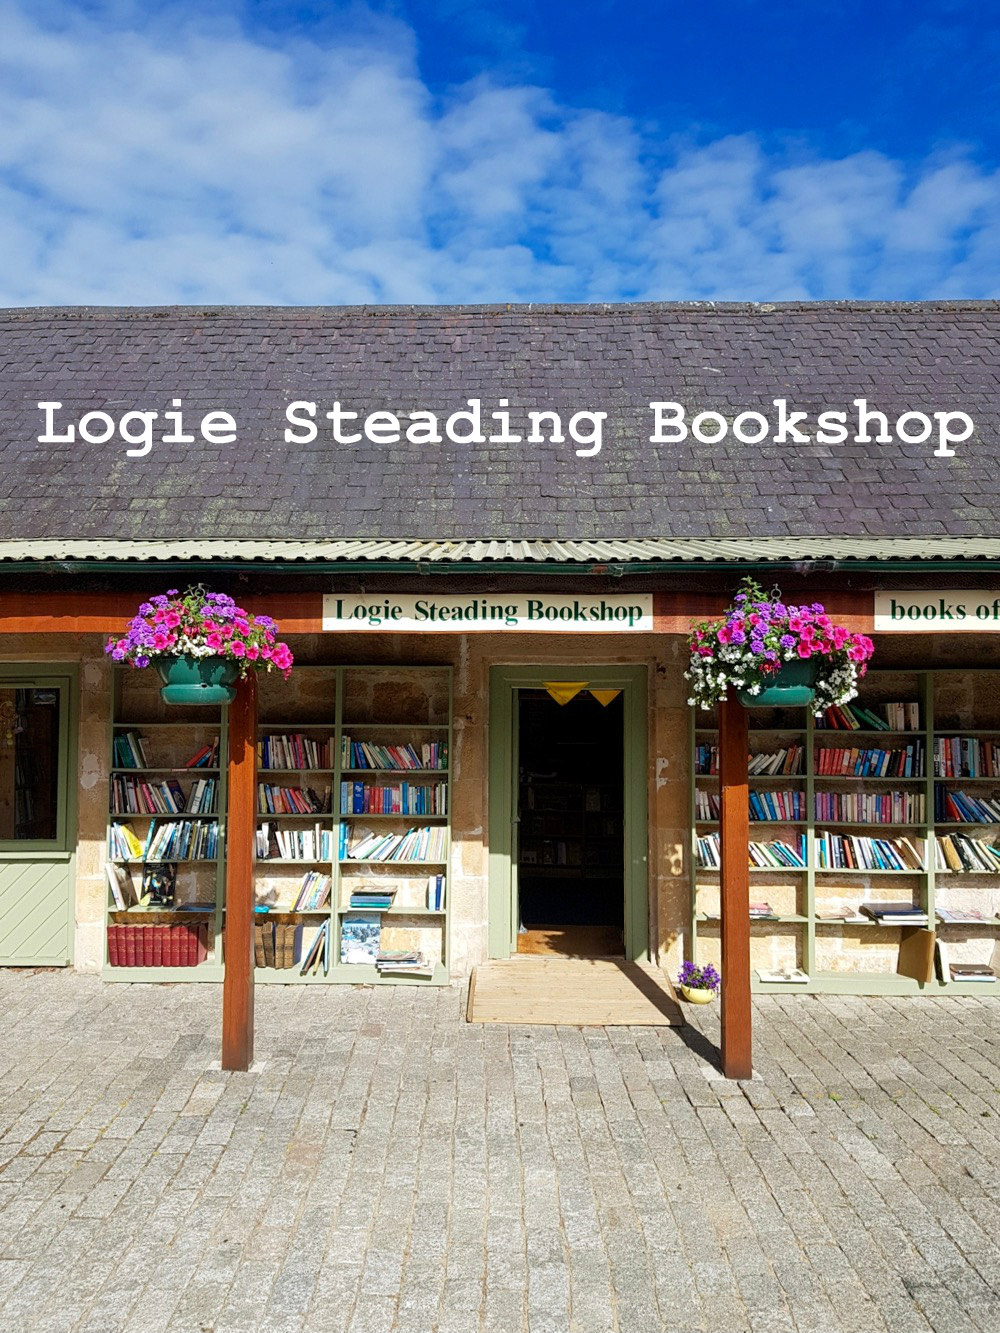 Logie Steading Bookshop whats here